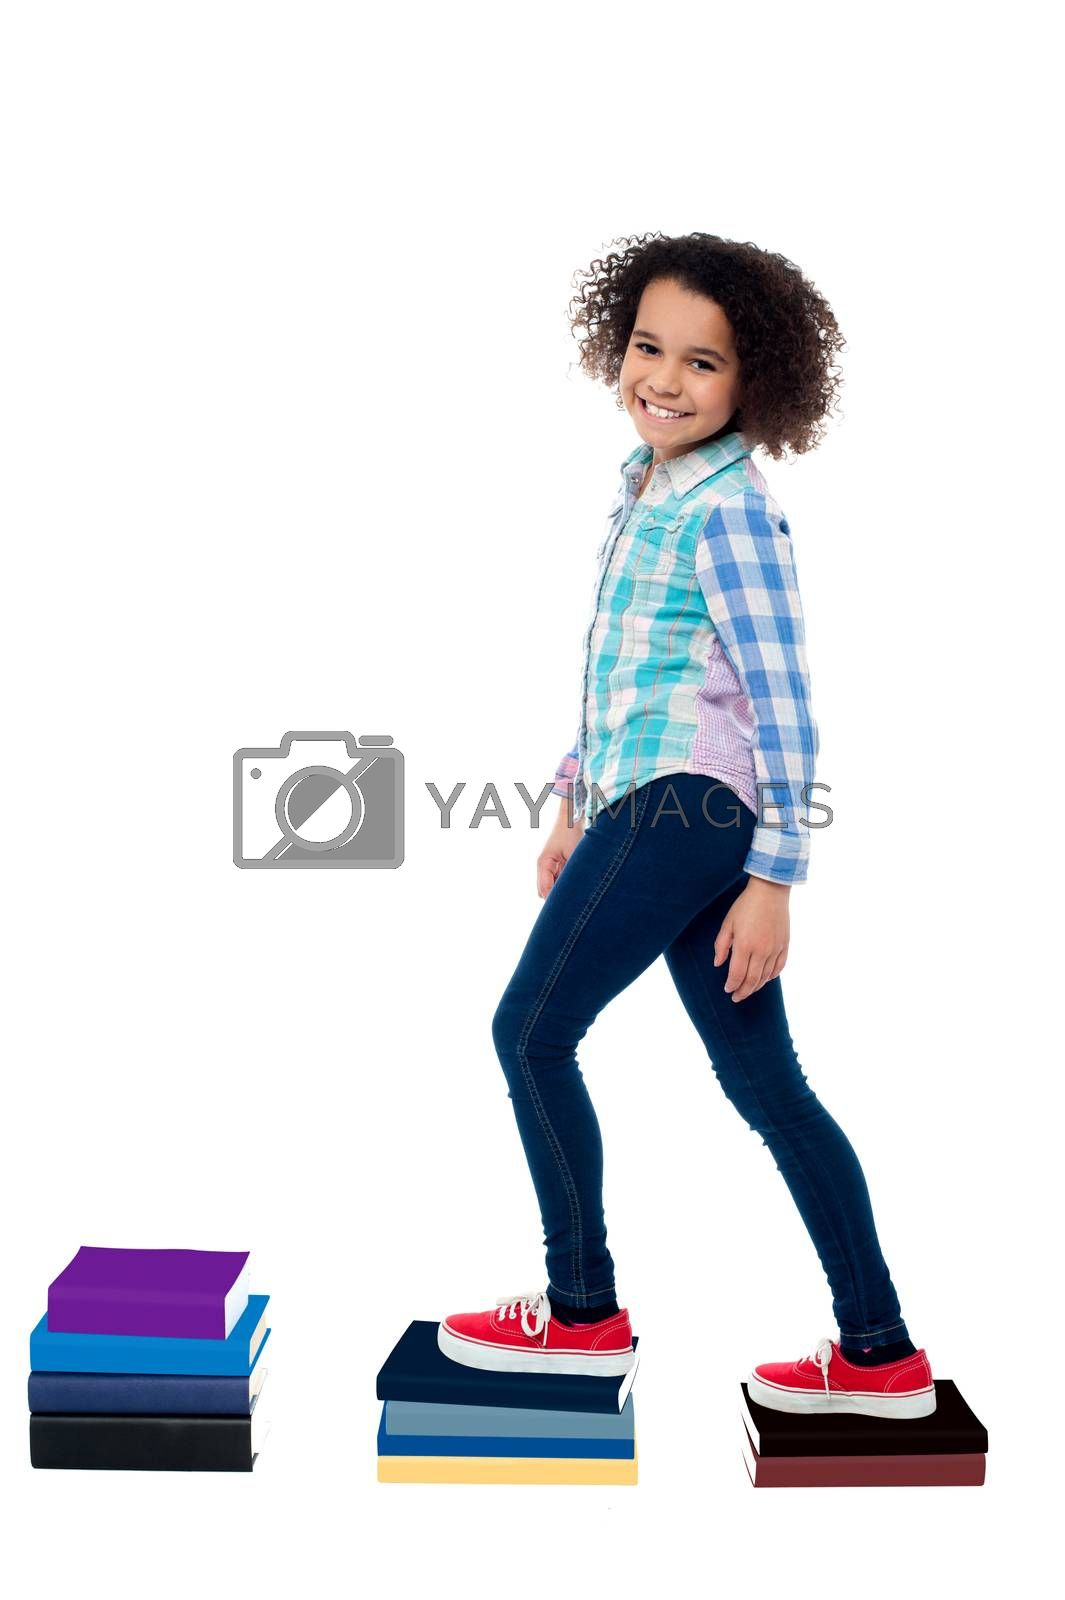 Pretty girl child climbing on notebooks over white